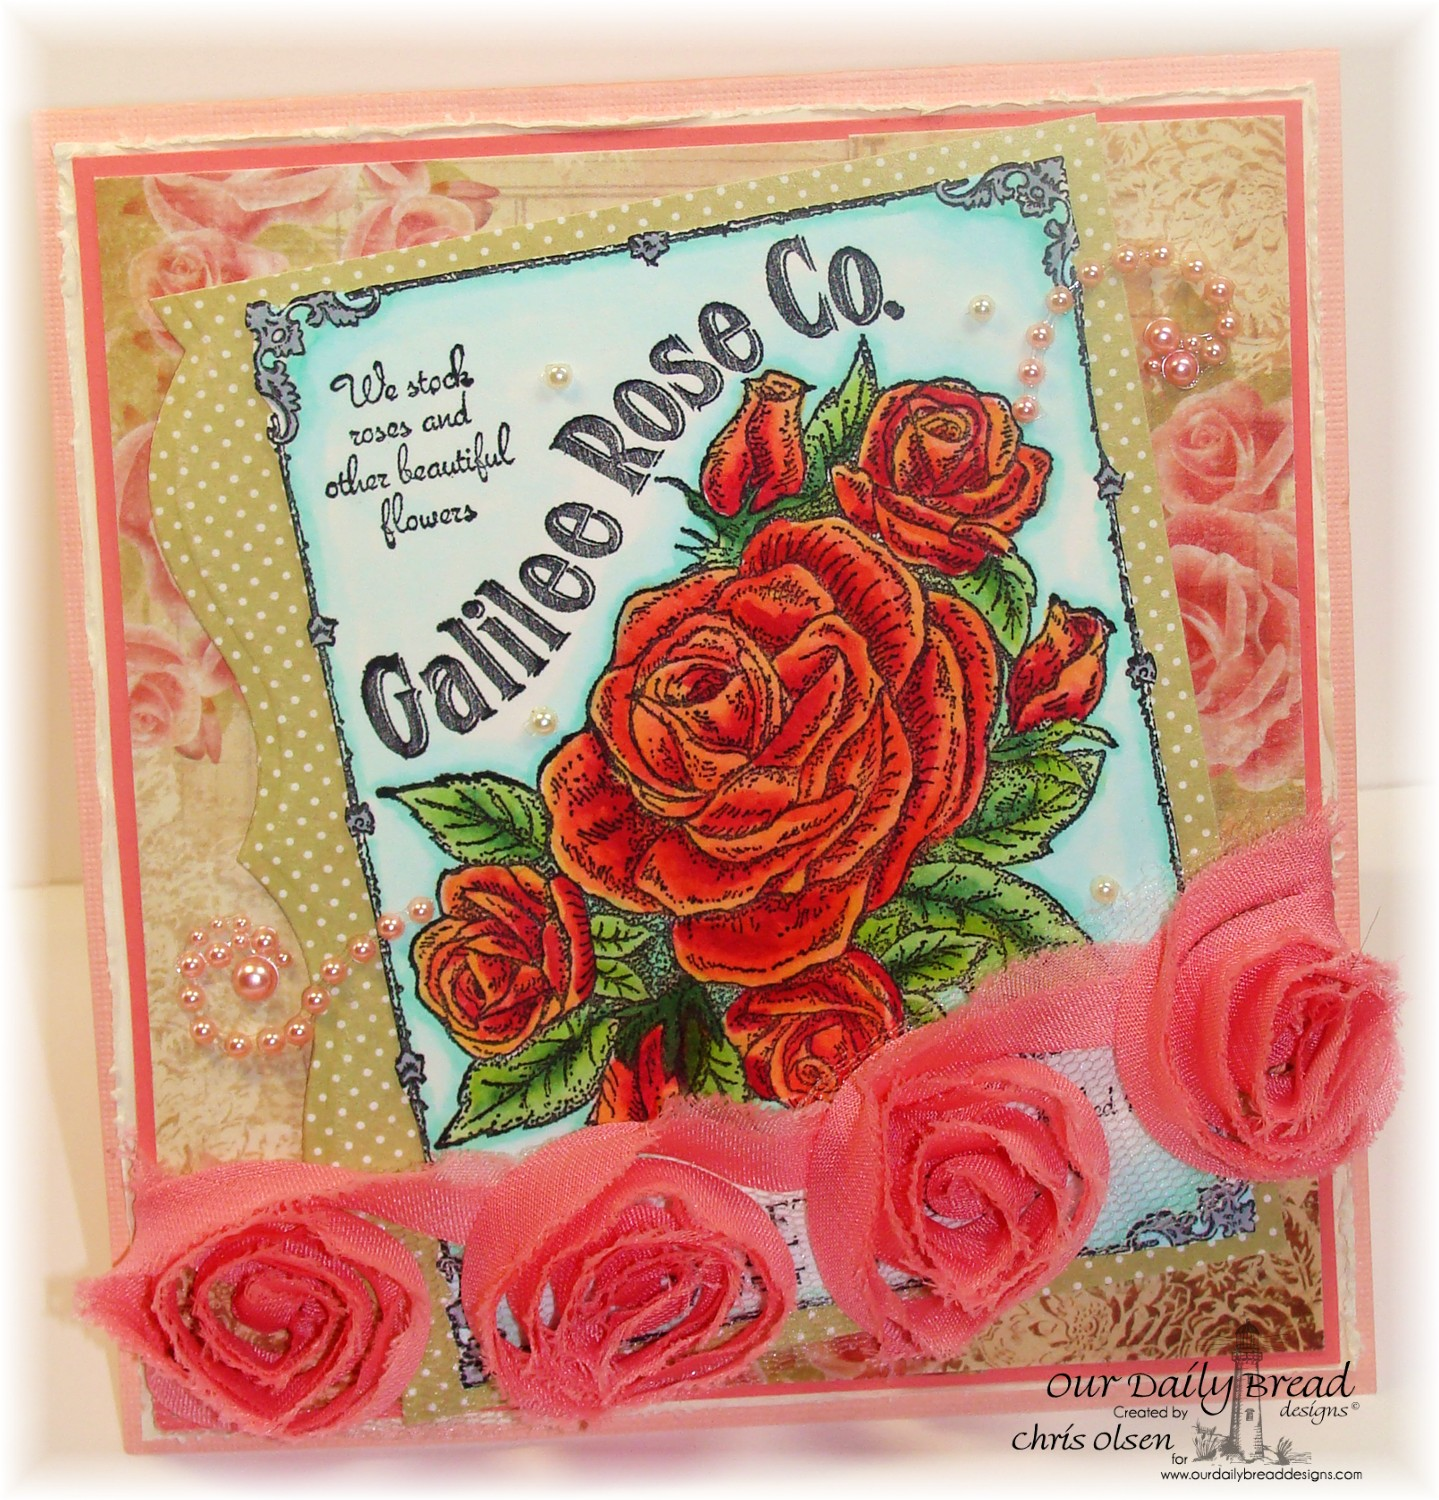 Stamps - Our Daily Bread Designs Galilee Rose Co., ODBD Blushing Rose Paper Collection